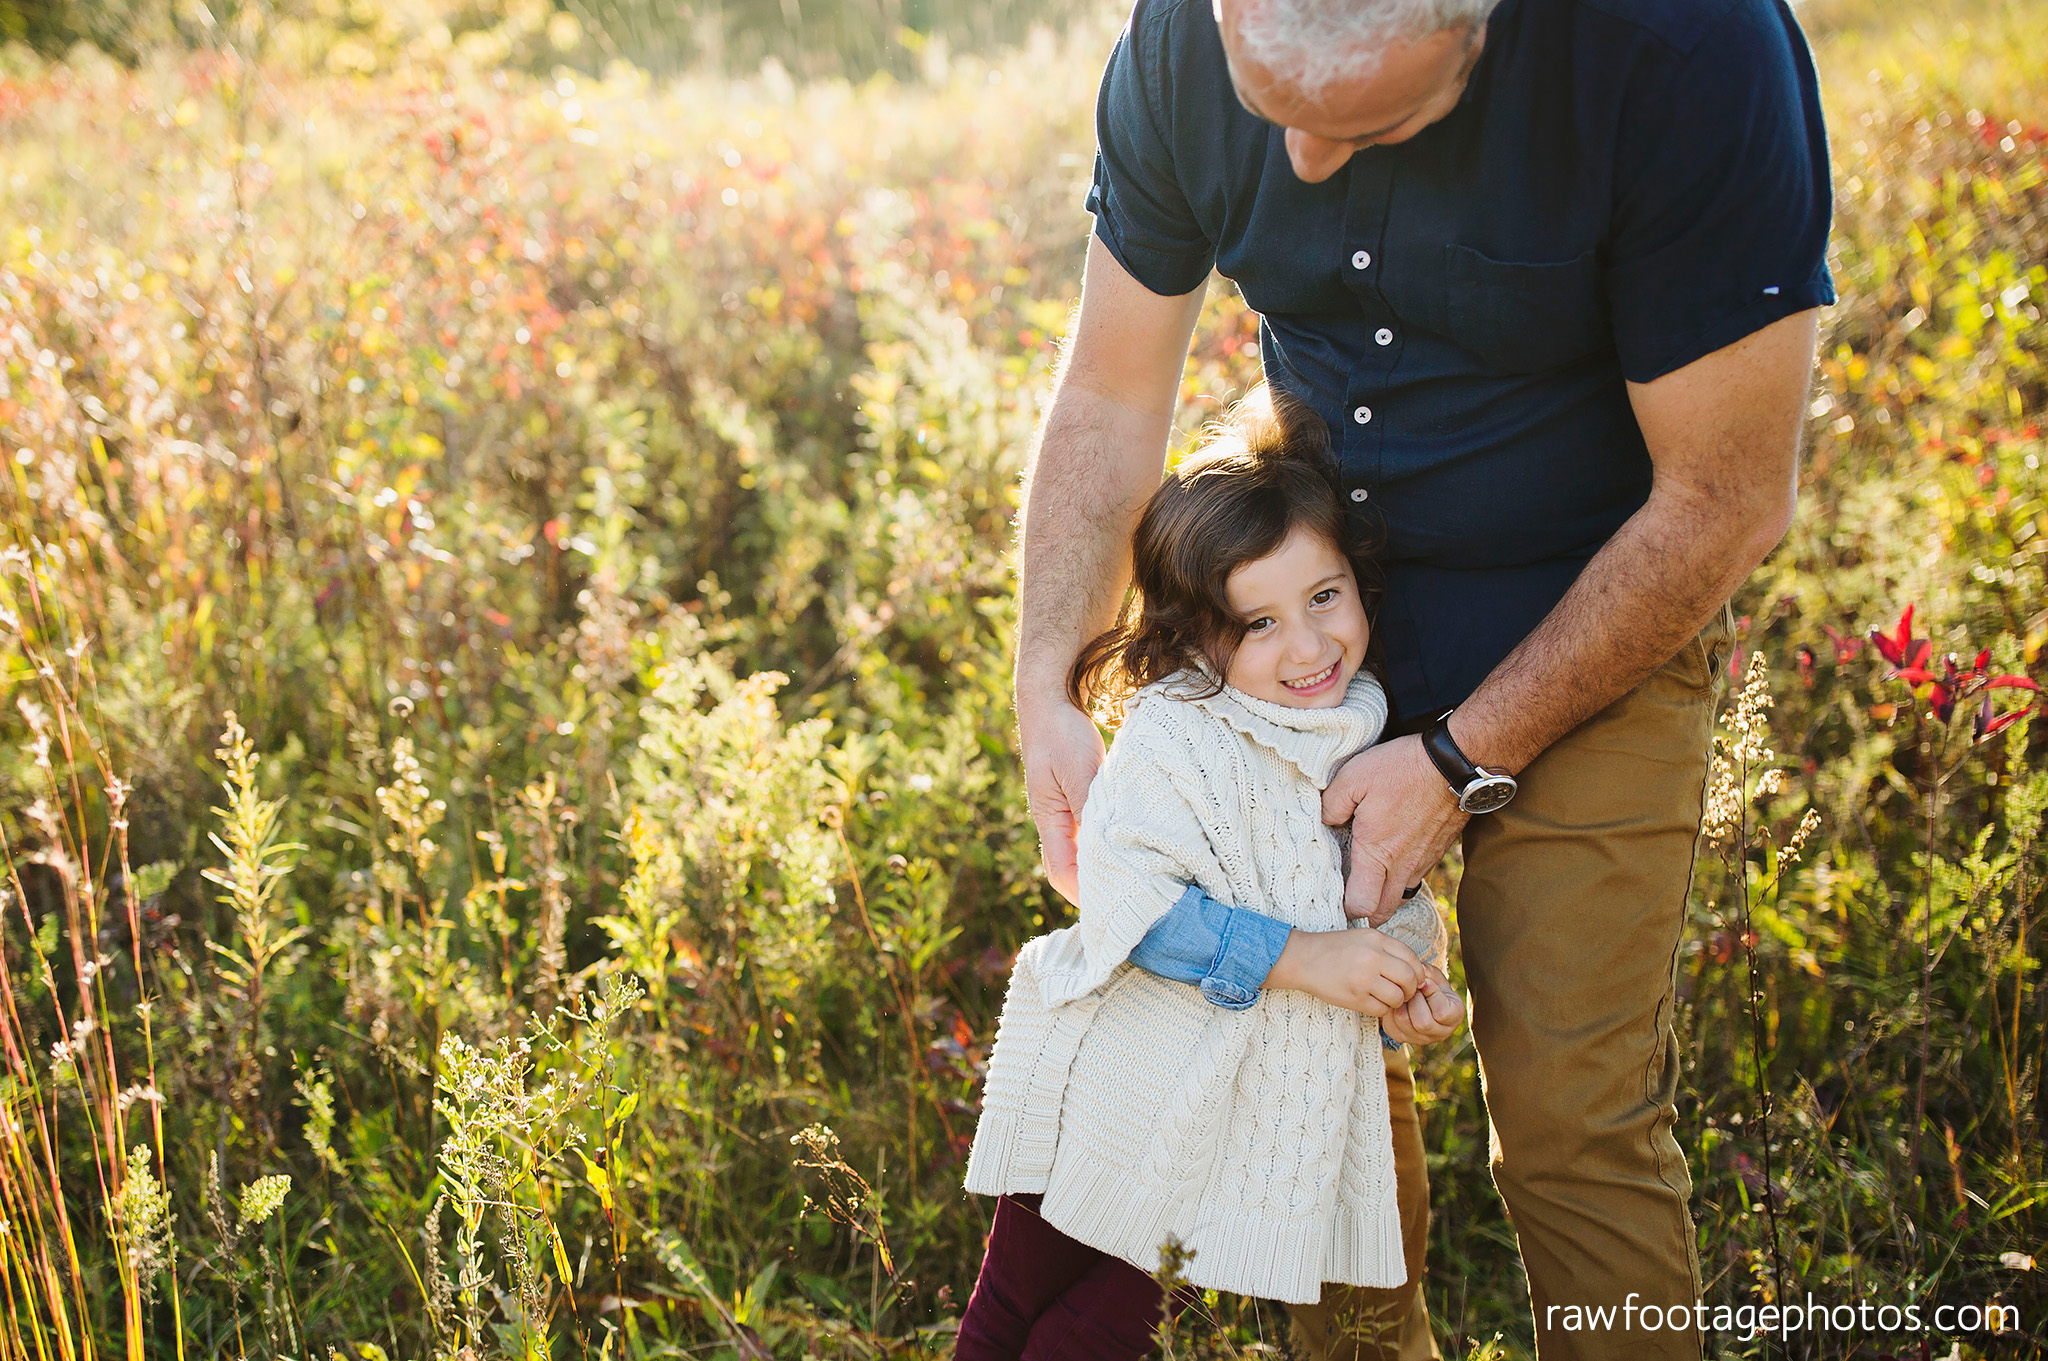 london_ontario_family_photographer-golden_hour_maternity_session-raw_footage_photography025.jpg